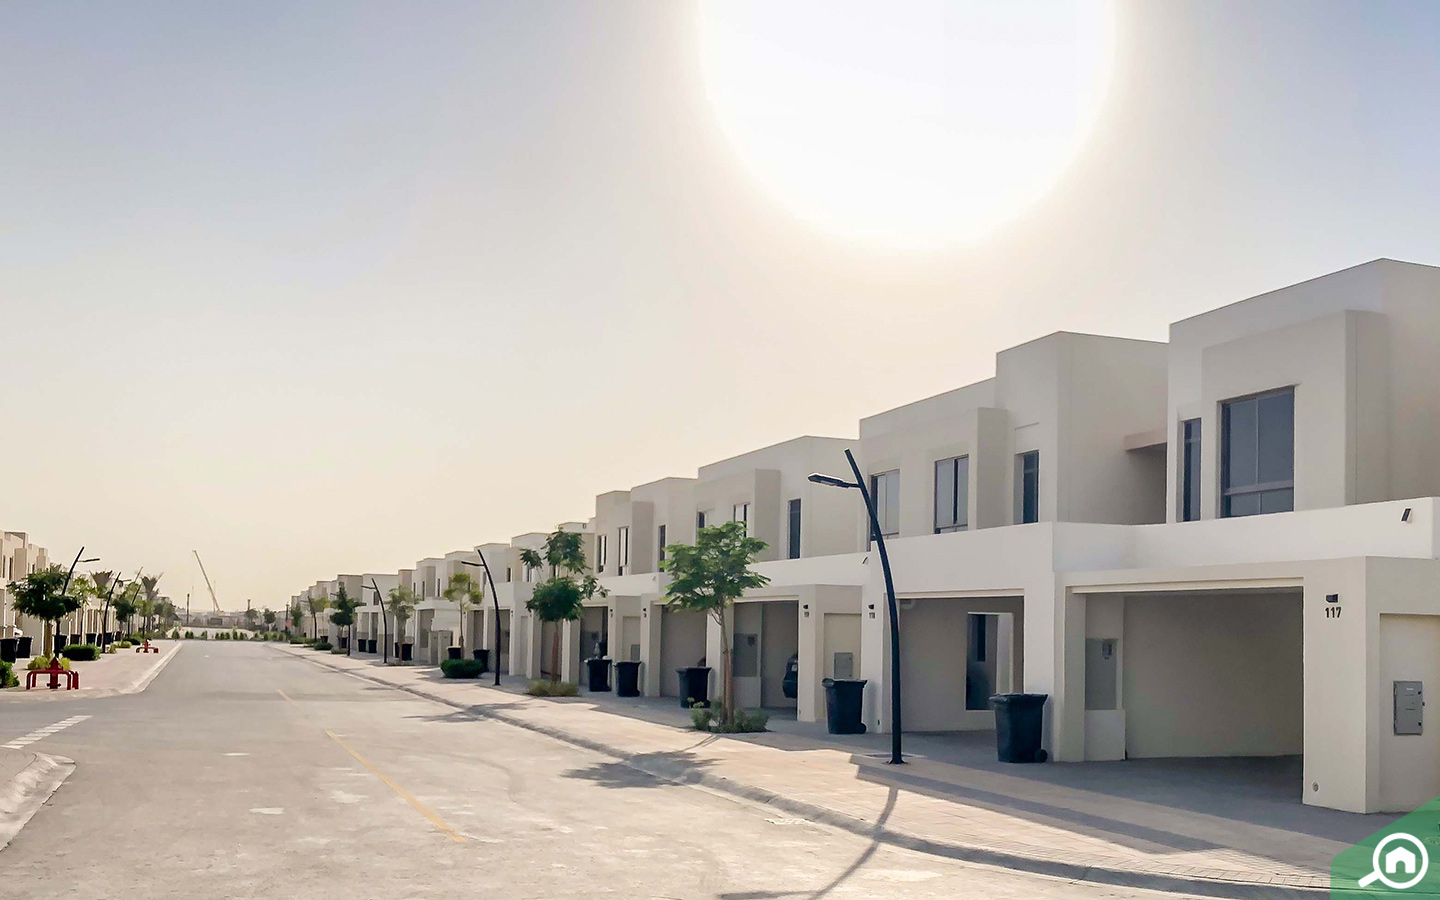 Townhouses for sale in Dubai at Town Square 13.01.2020